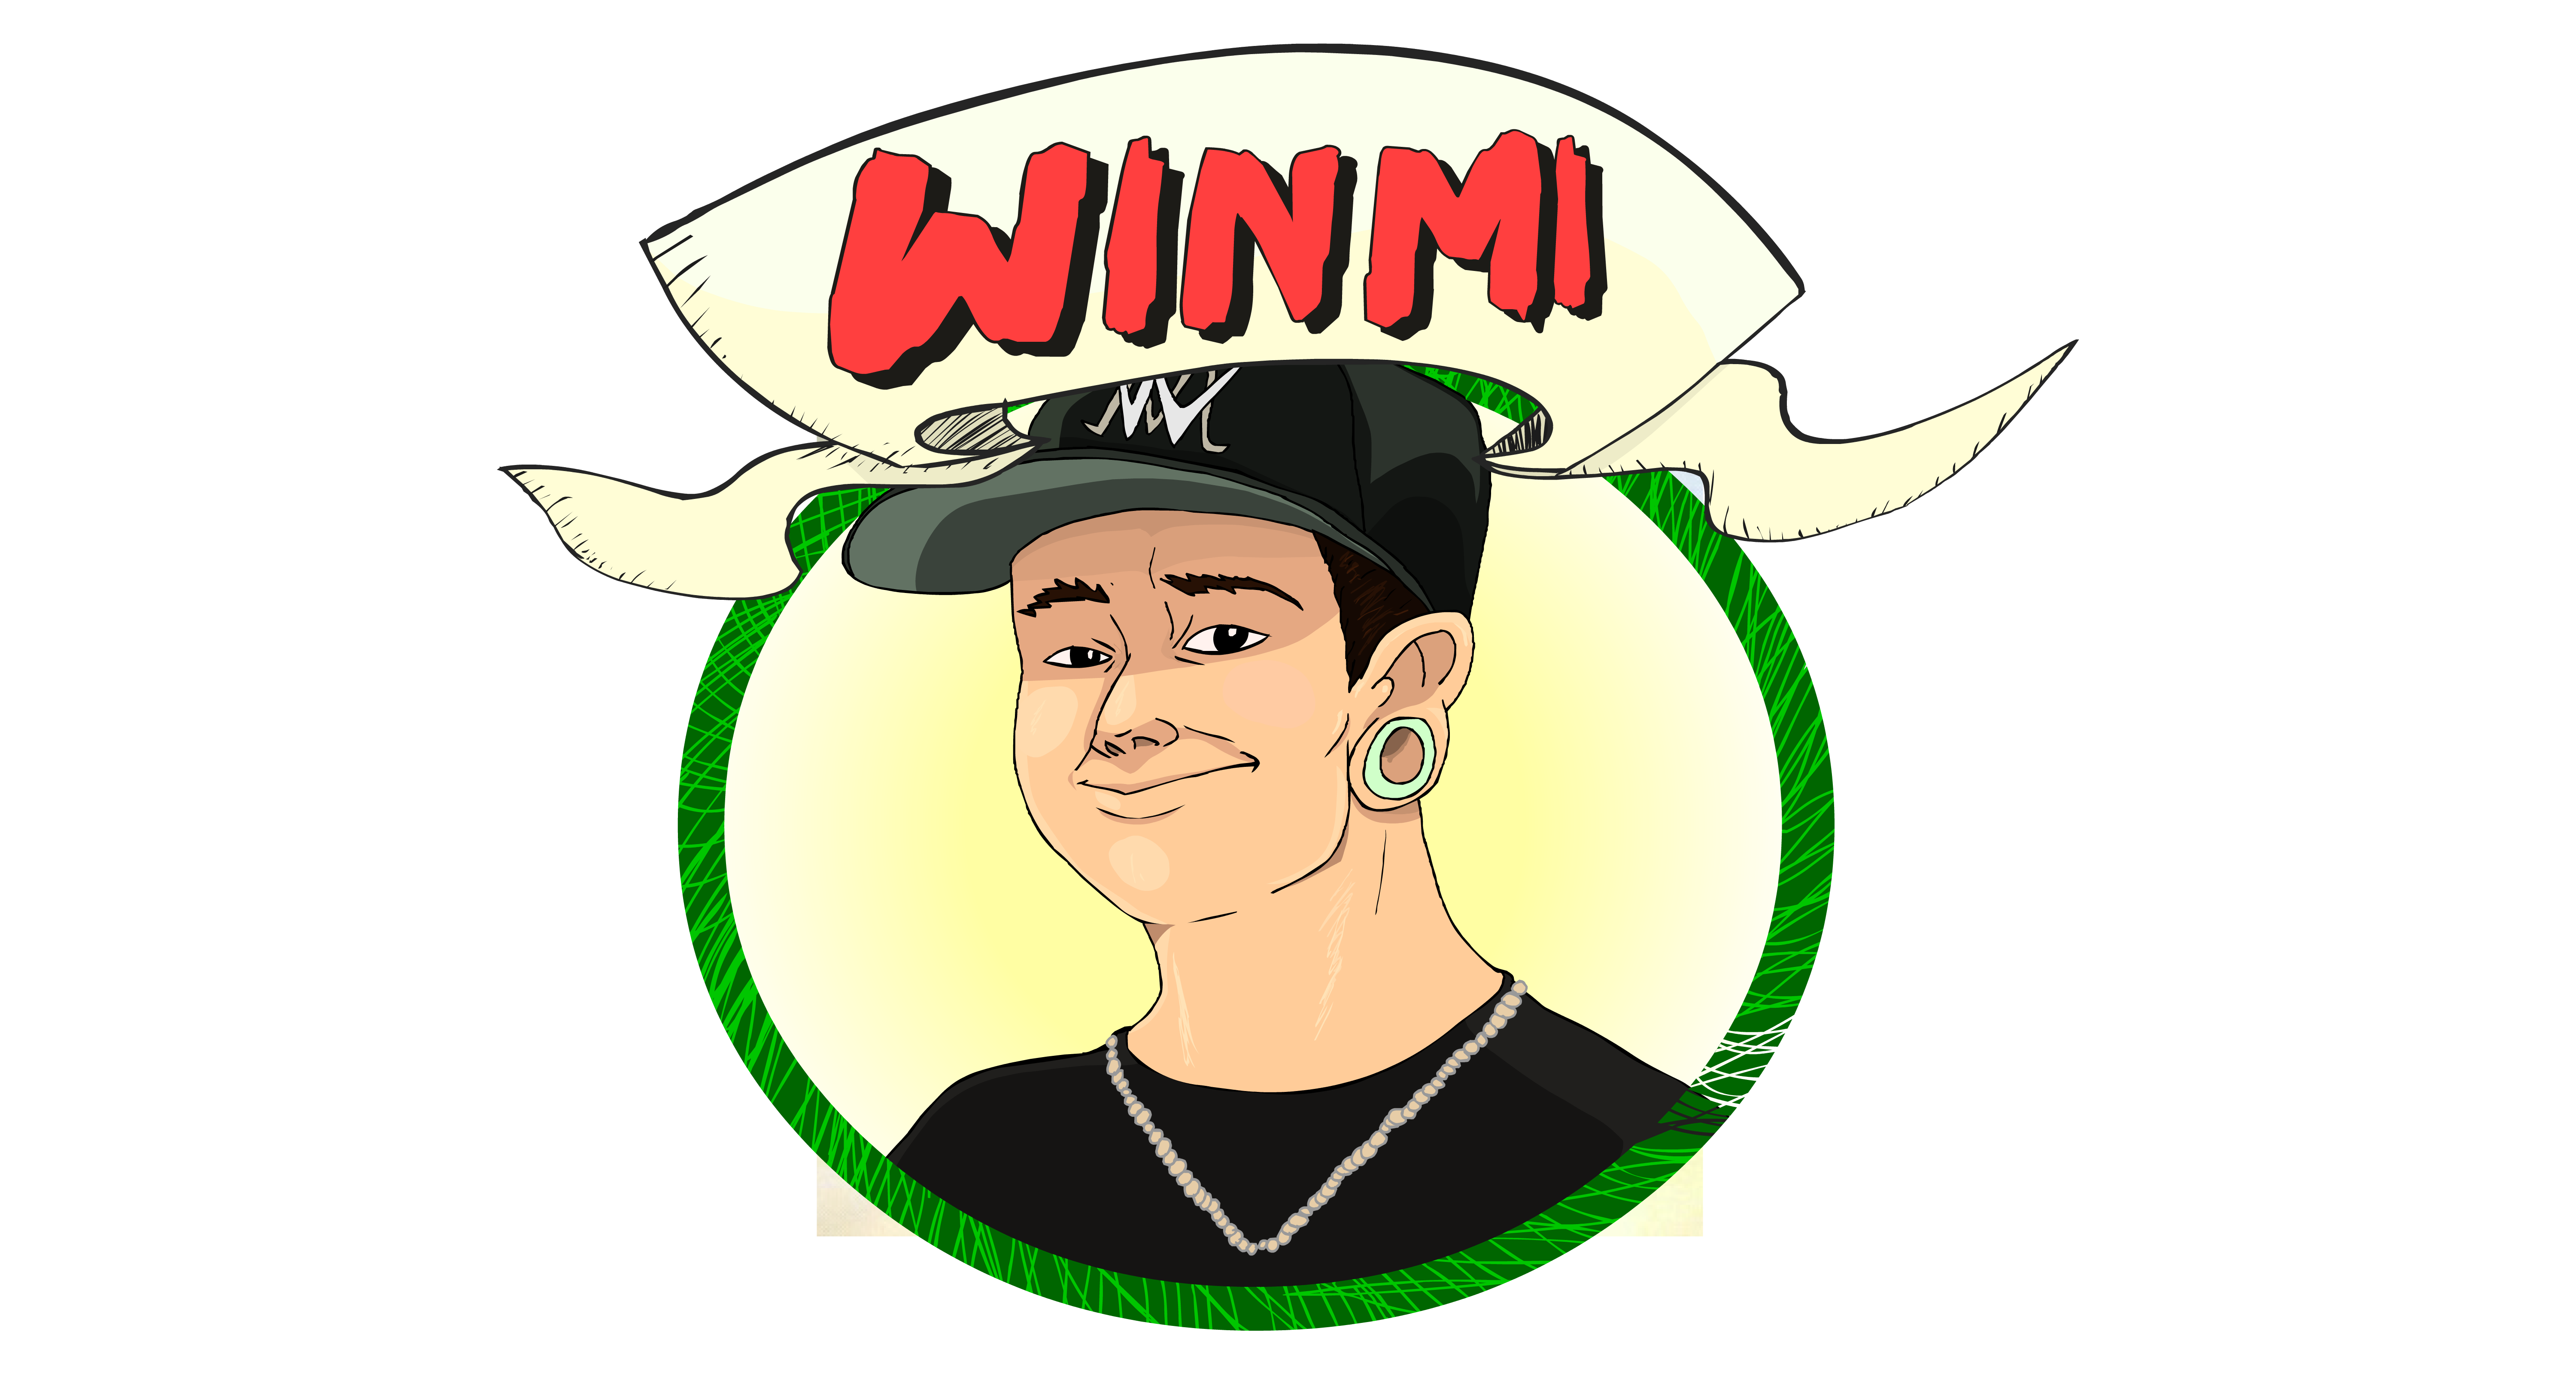 (commission) WinMi Channel Logo (Comm. art)